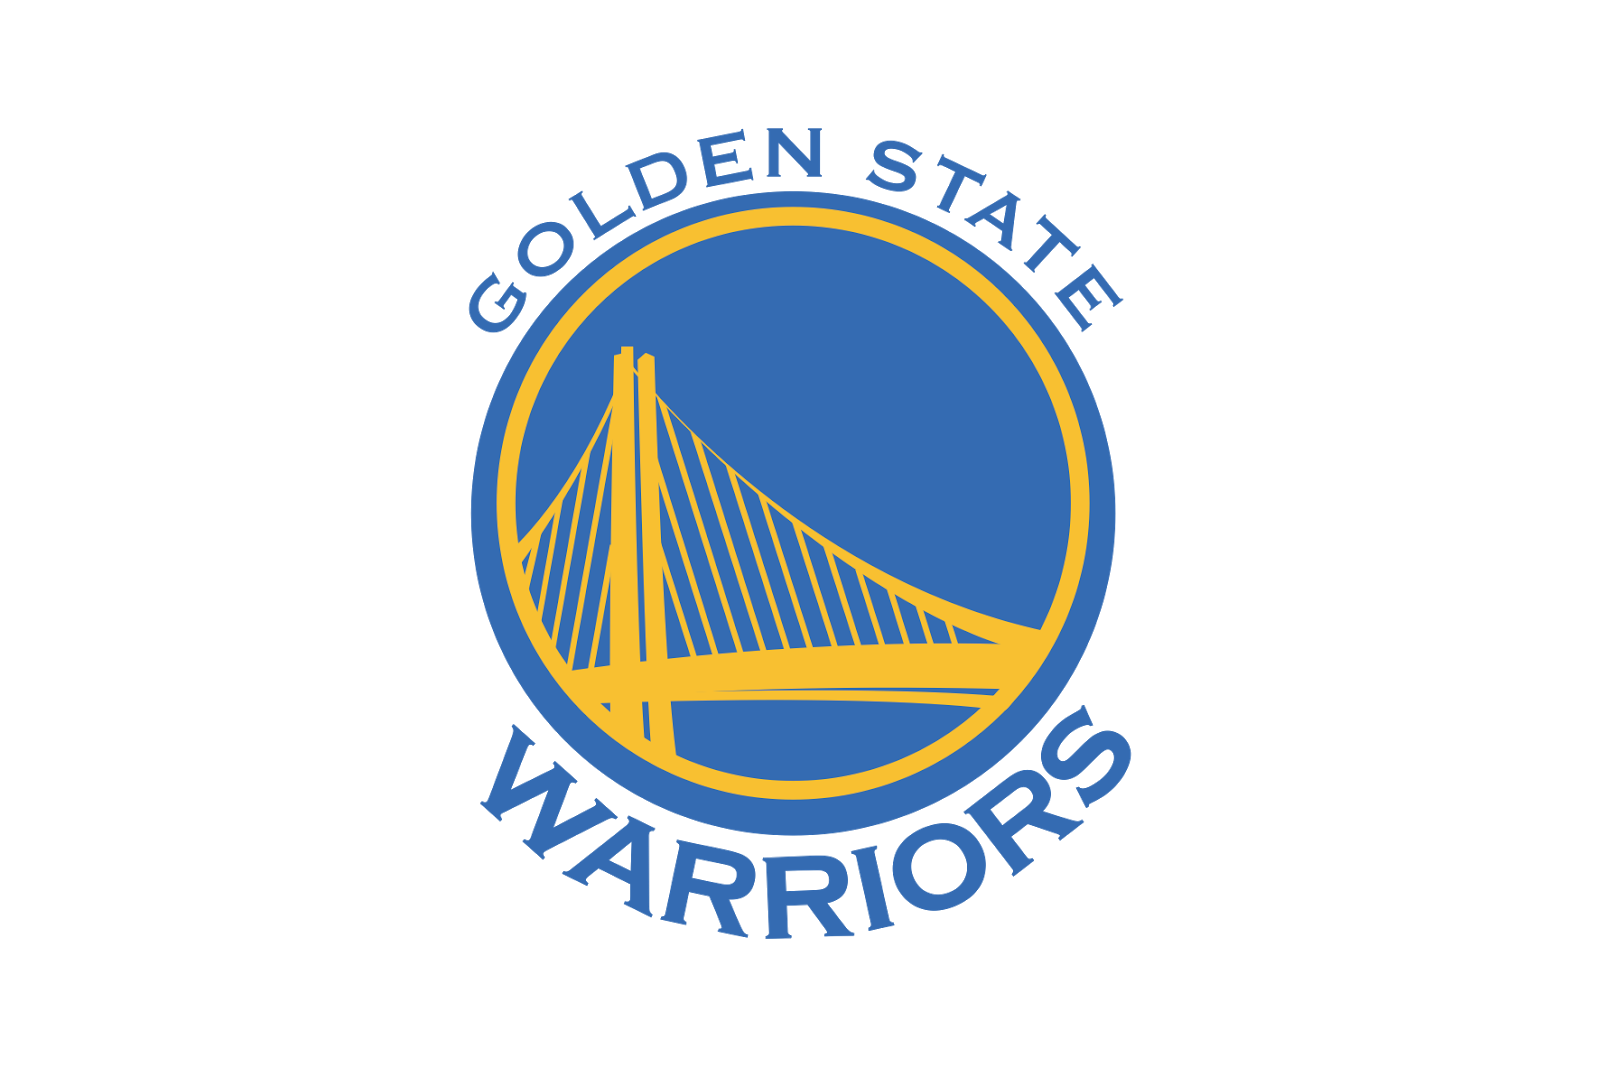 1600x1067 Ranking The Best And Worst Nba Logos, From 1 To 30 For The Win